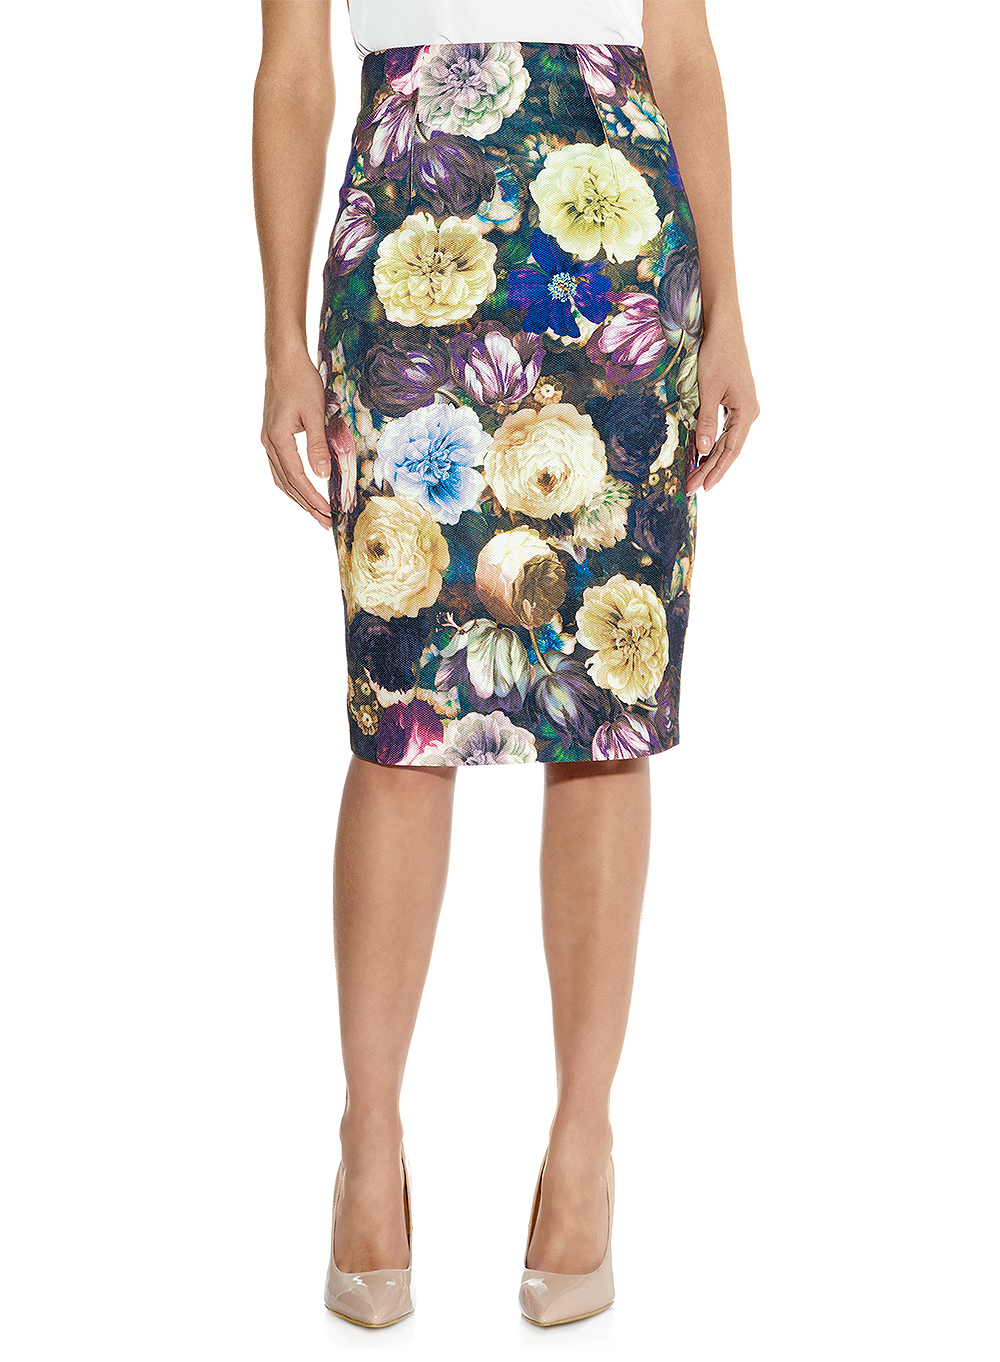 Darling Layla Pencil Skirt DS14W325 at darlingclothes.com